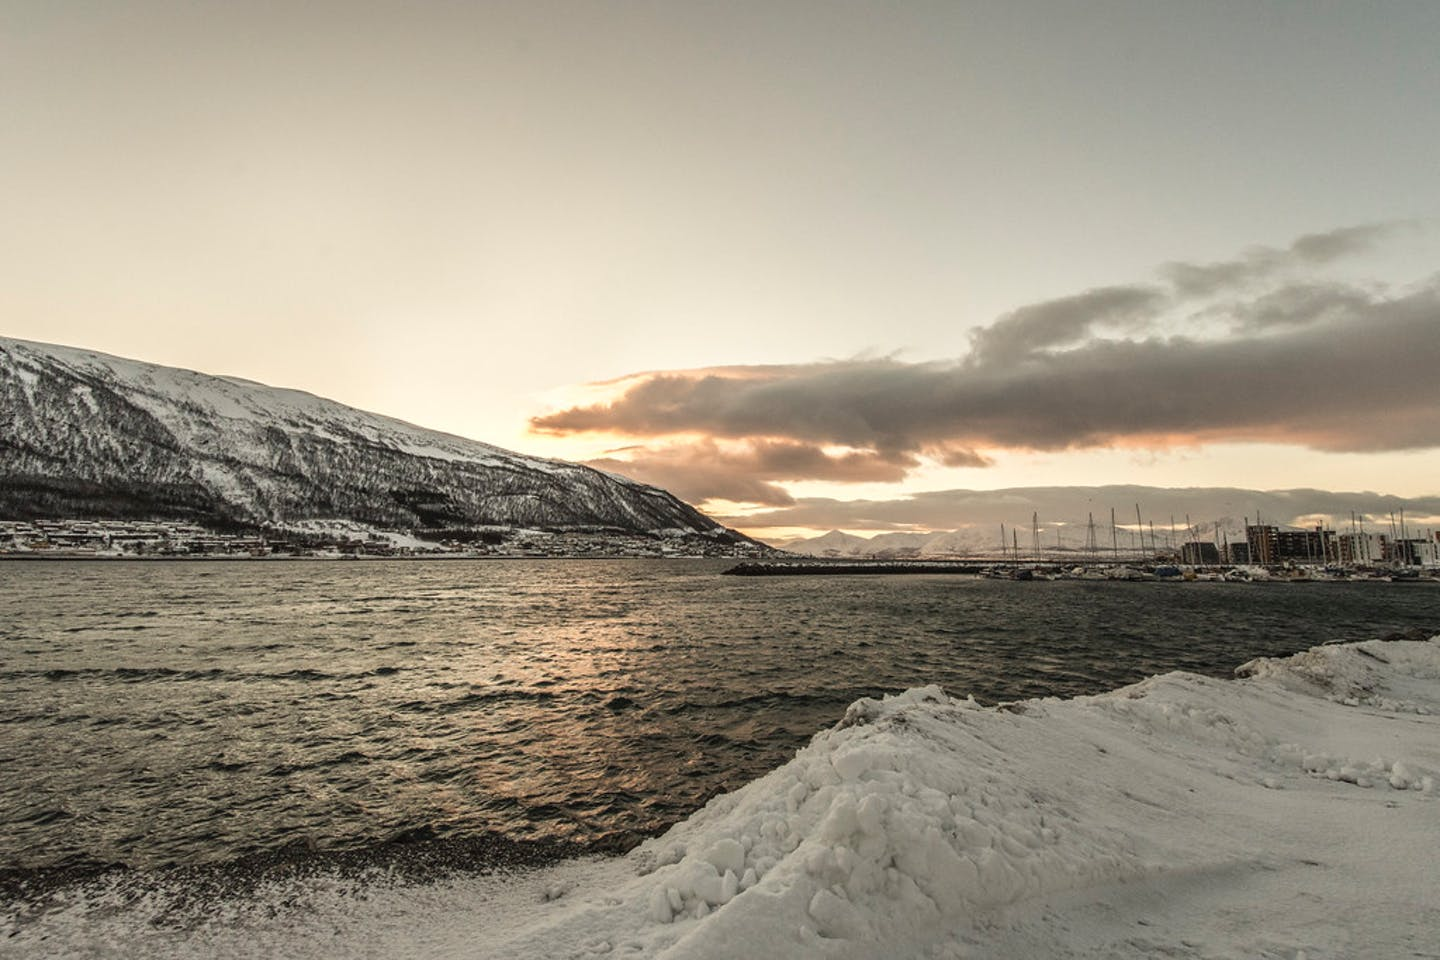 The Arctic sea as seen from Troms, a former county in Norway